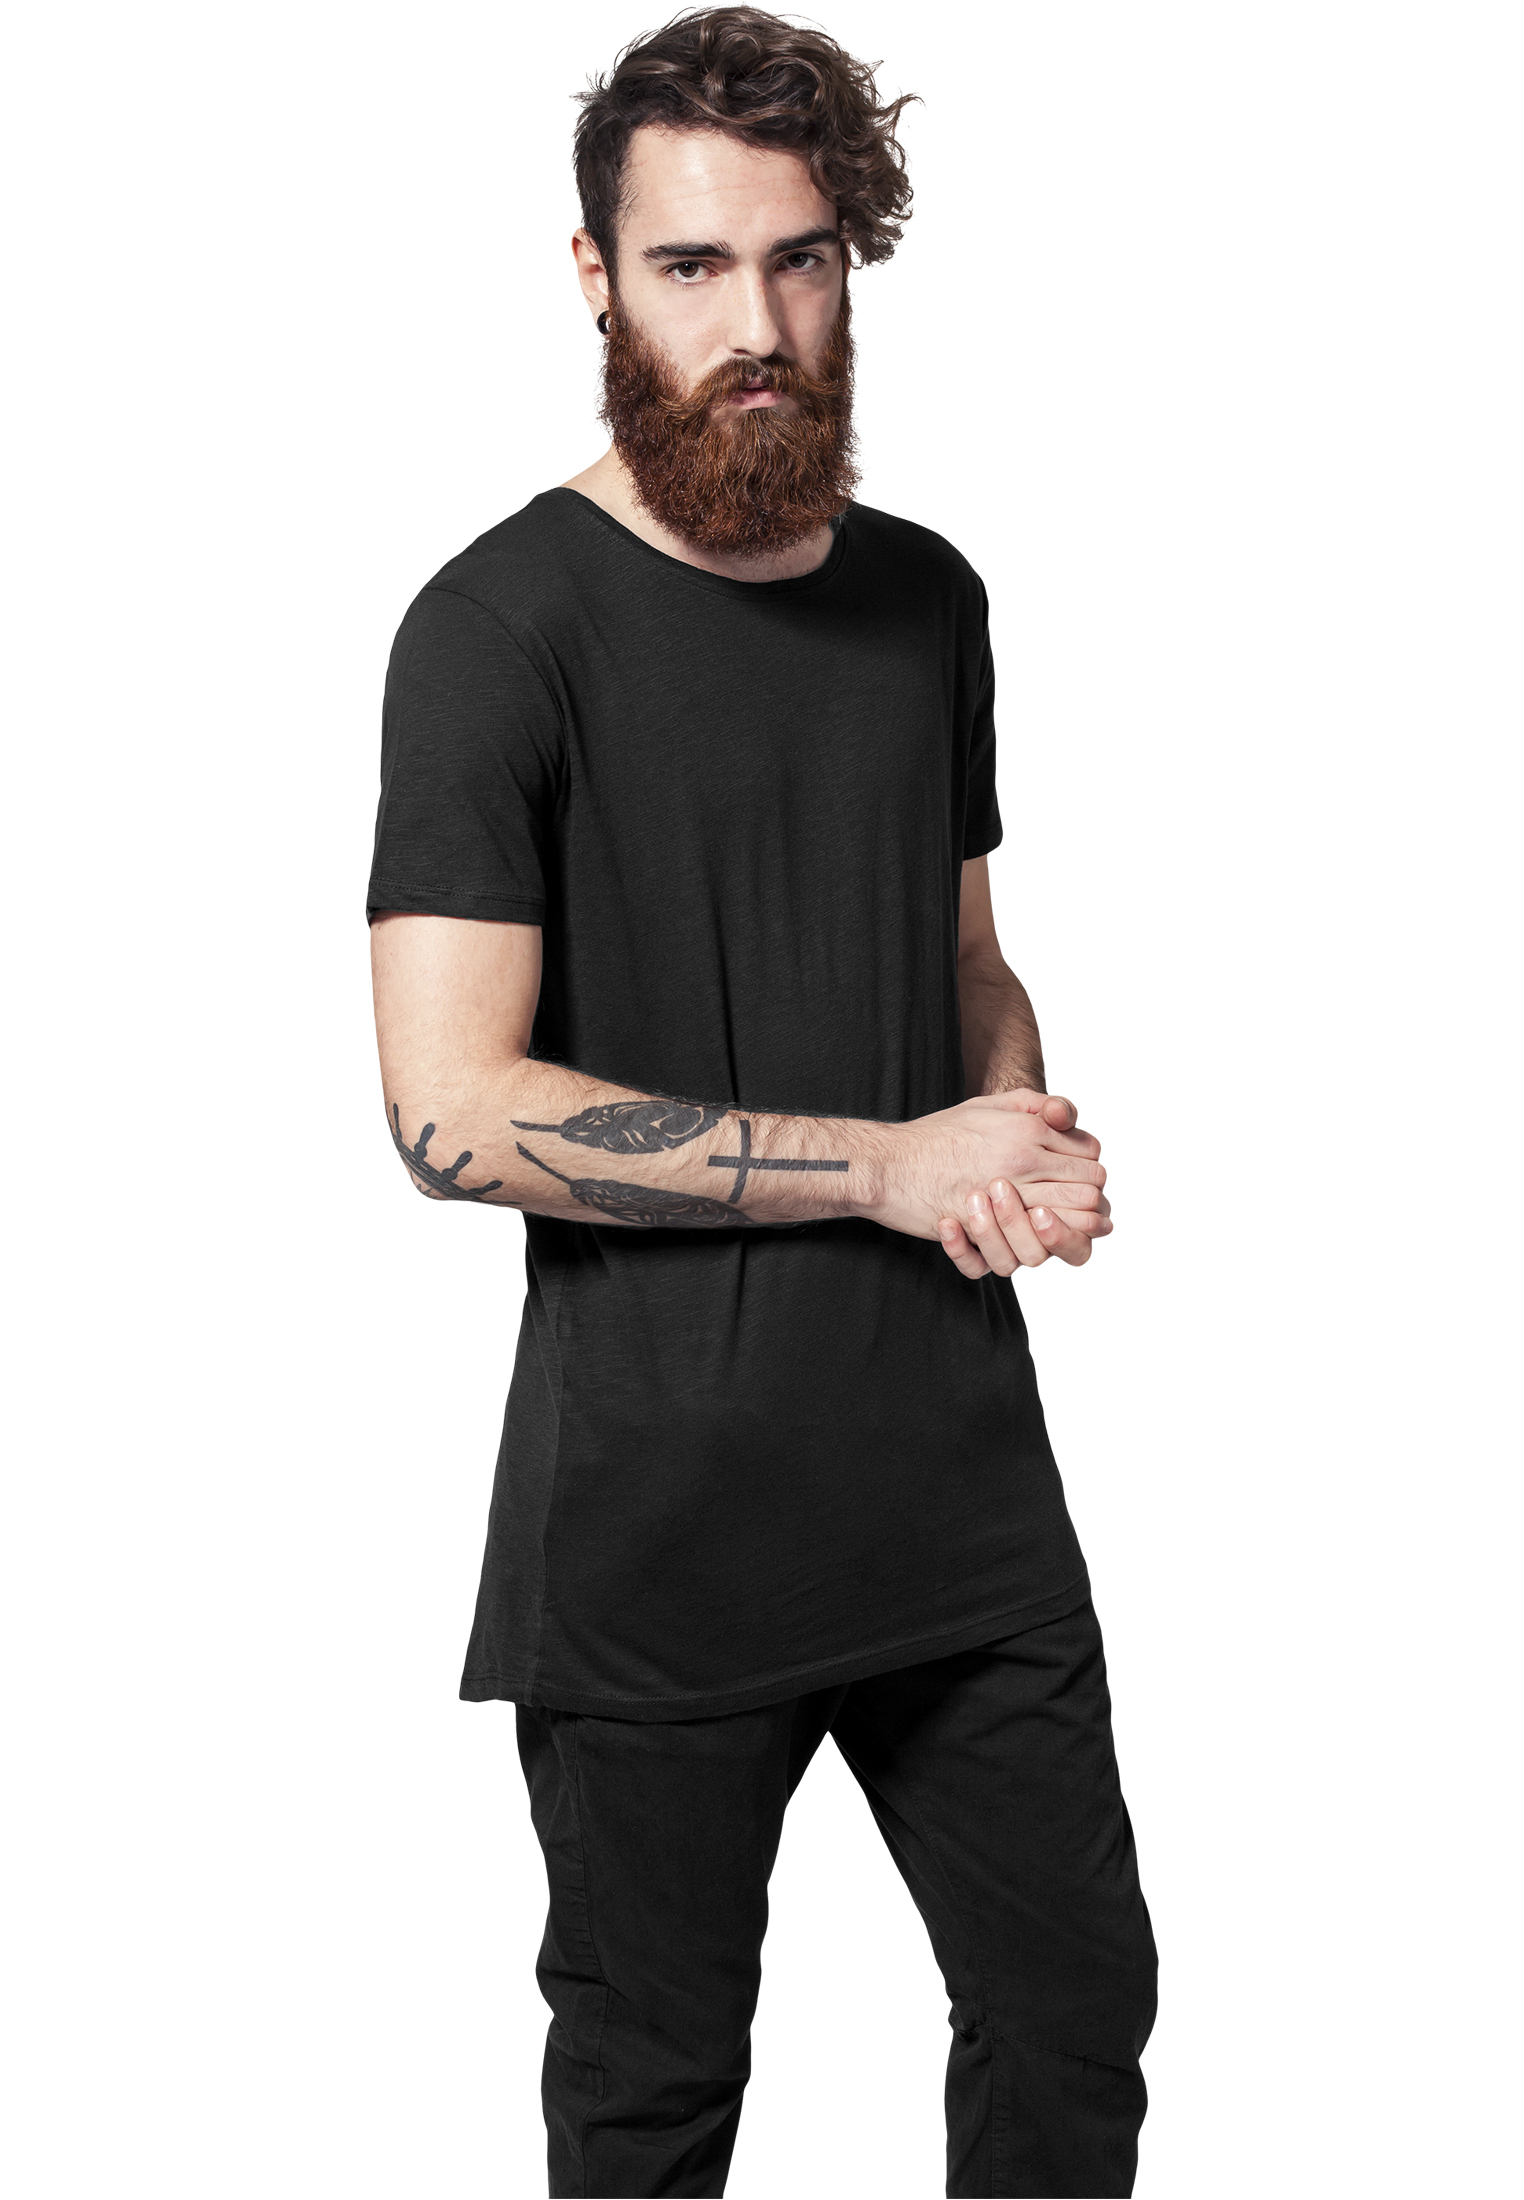 TB1094 Long Fit T-shirt Black long slub UC Mannen